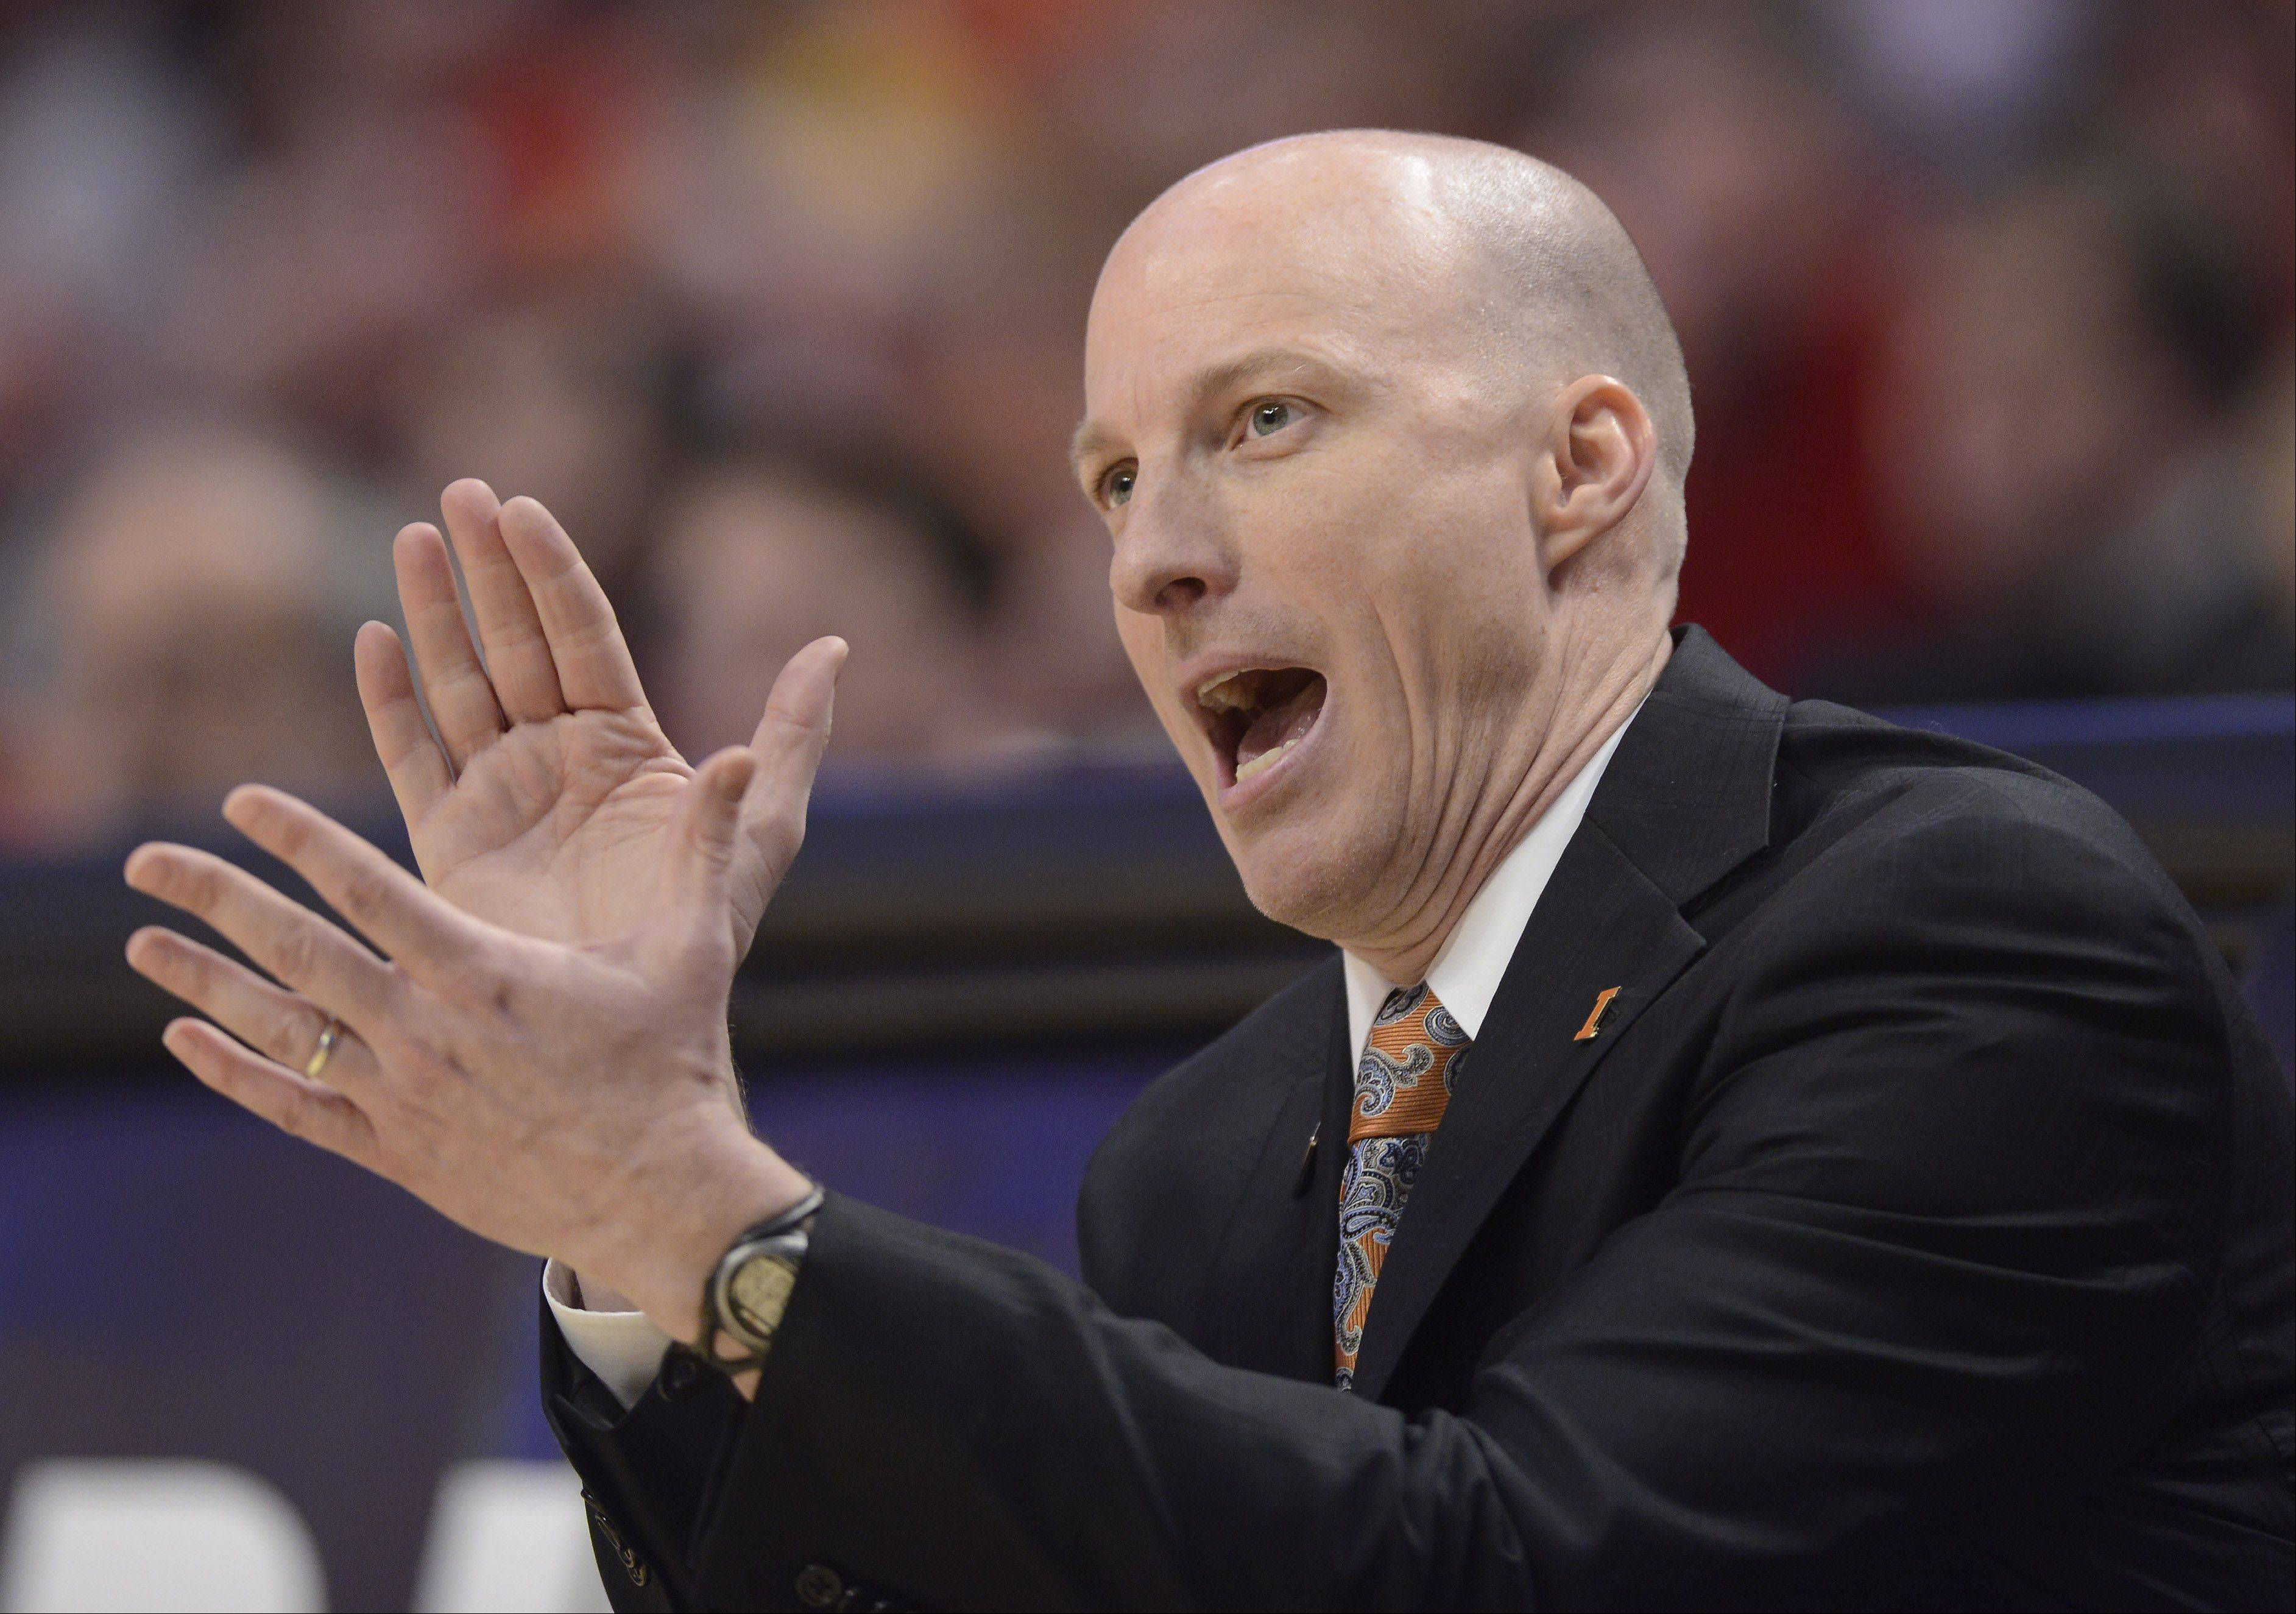 University of Illinois trustees approved a contract extension and a raise for men's basketball coach John Groce, who led his team to the NCAA tournament in his first season in Champaign.